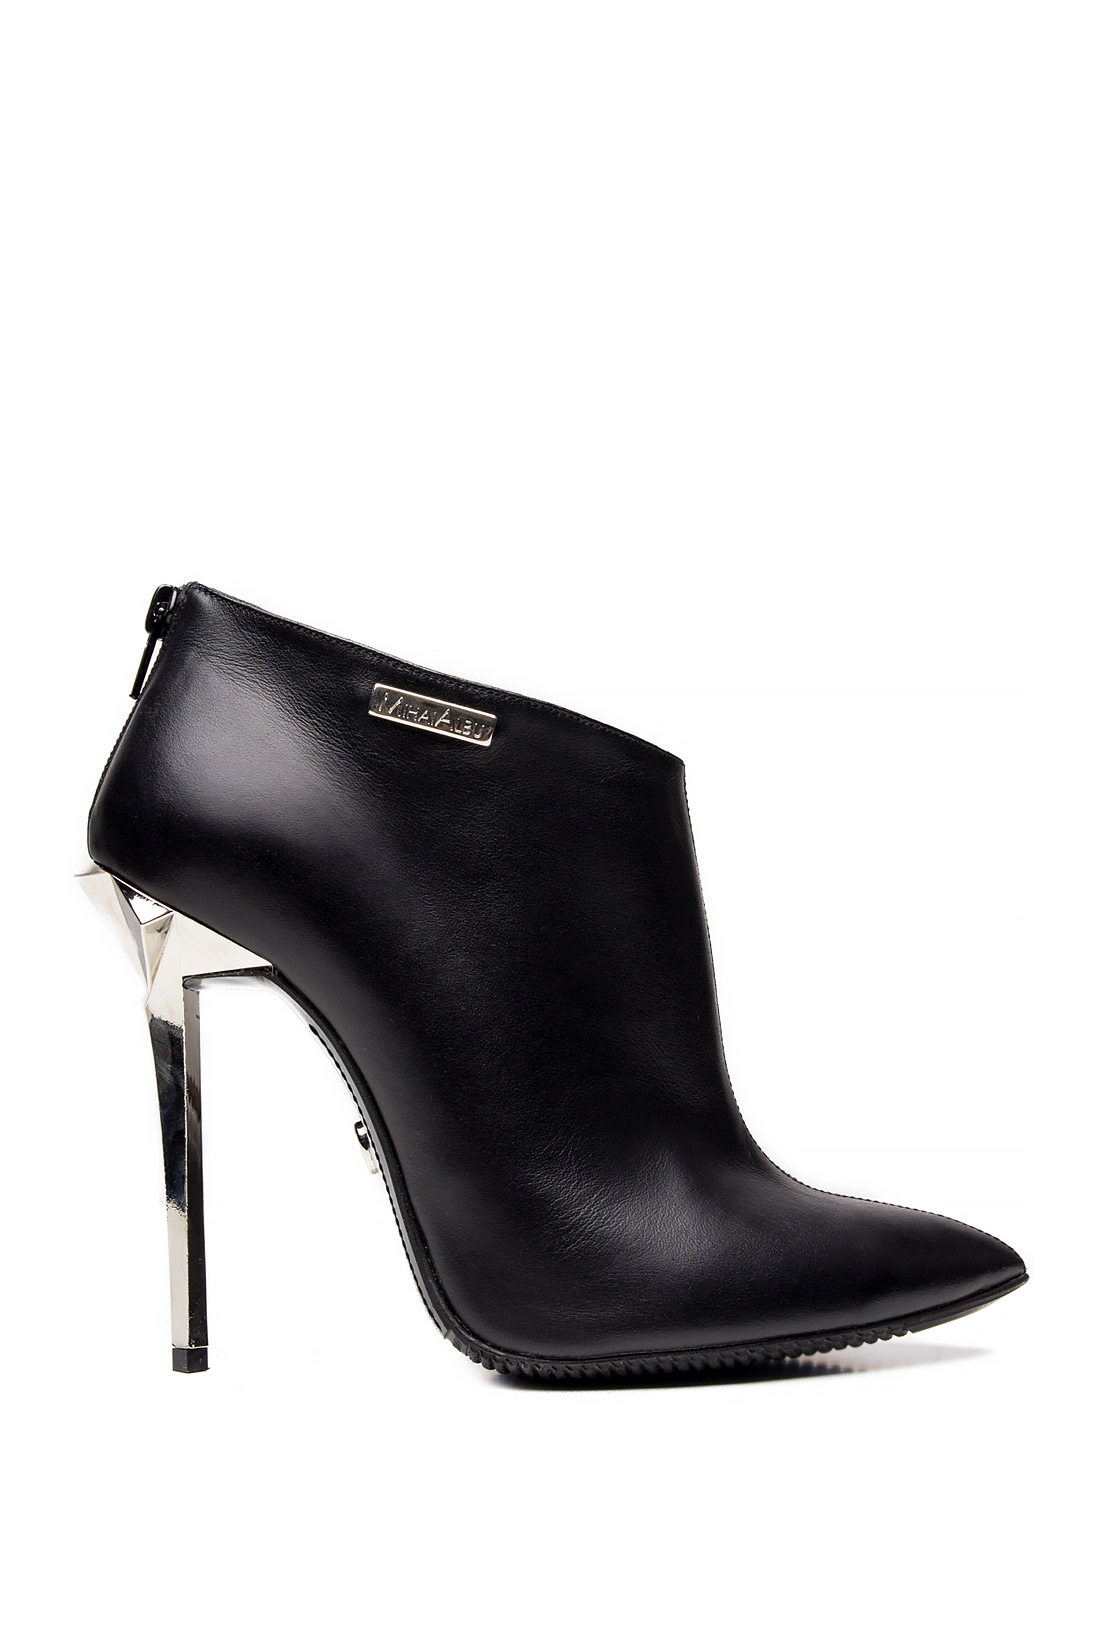 Leather Ankle Boots Heeled Shoes Made To Measure Slingback Stealth Mihai Albu Image 0